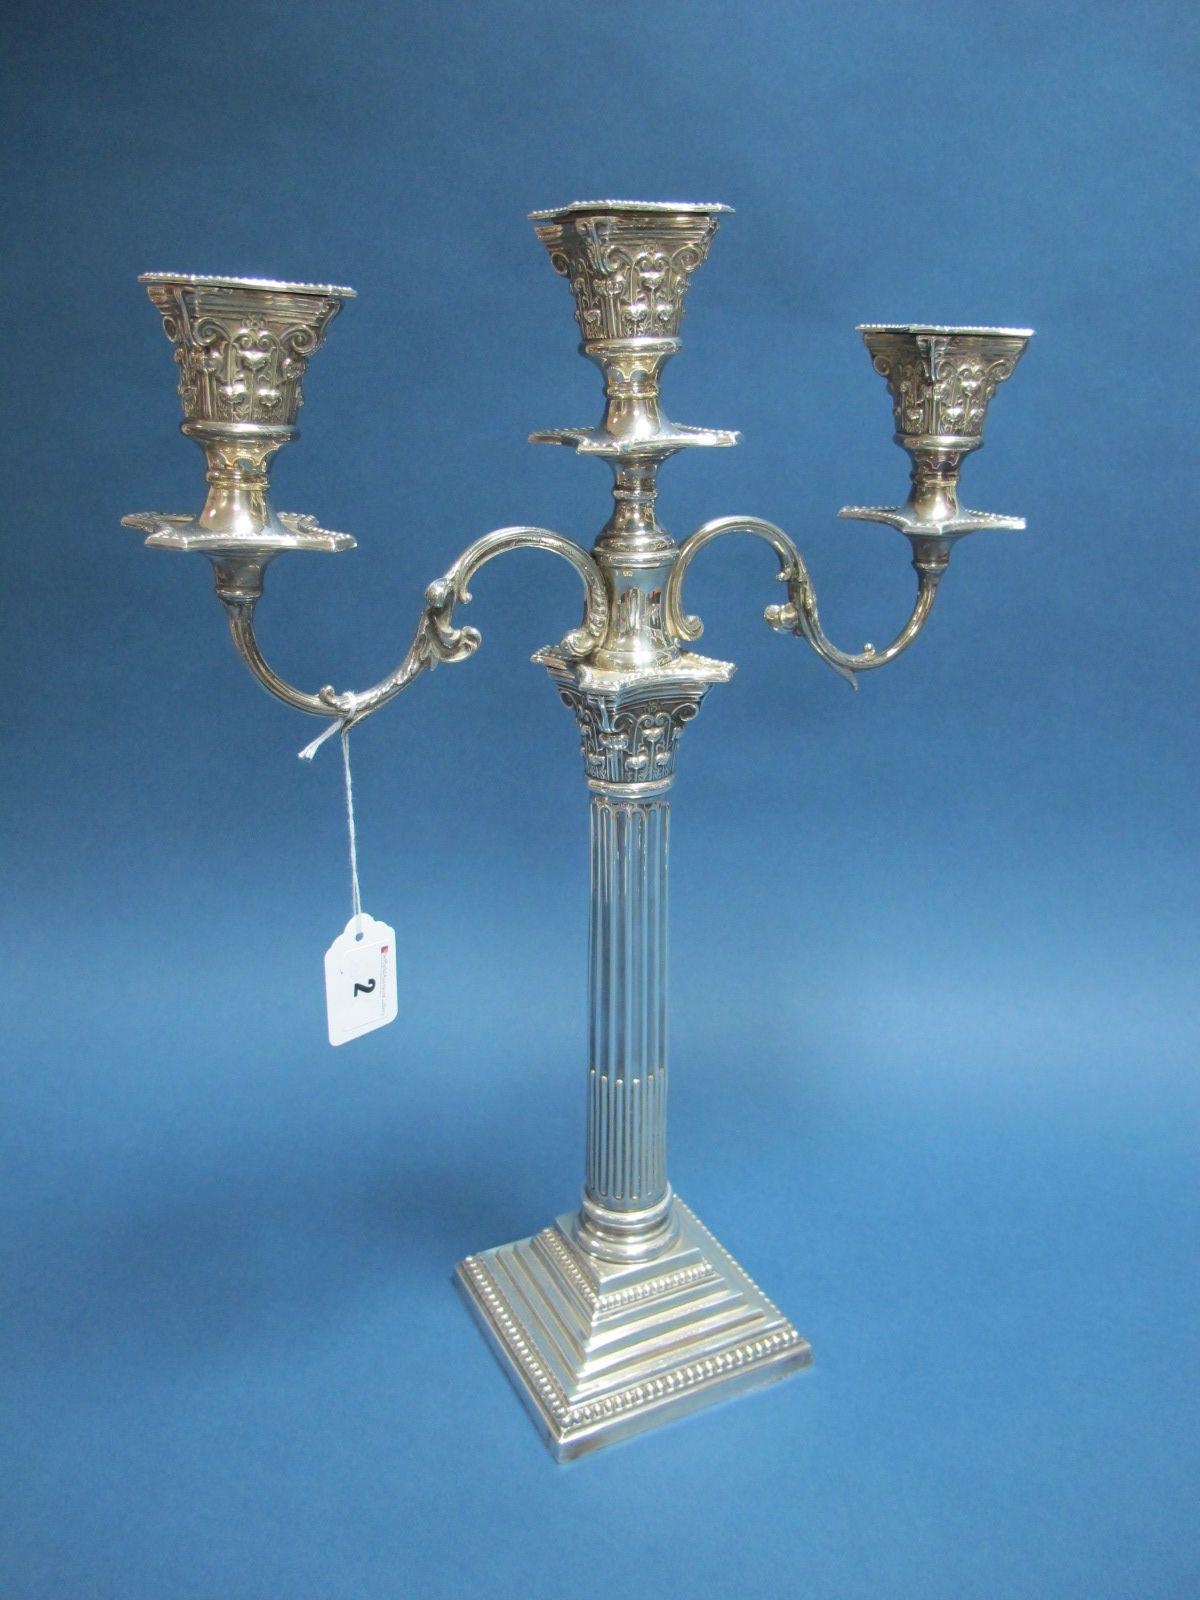 Lot 2 - A Barker-Ellis Plated Twin Branch Three Light Candelabrum, the Corinthian column supporting twin